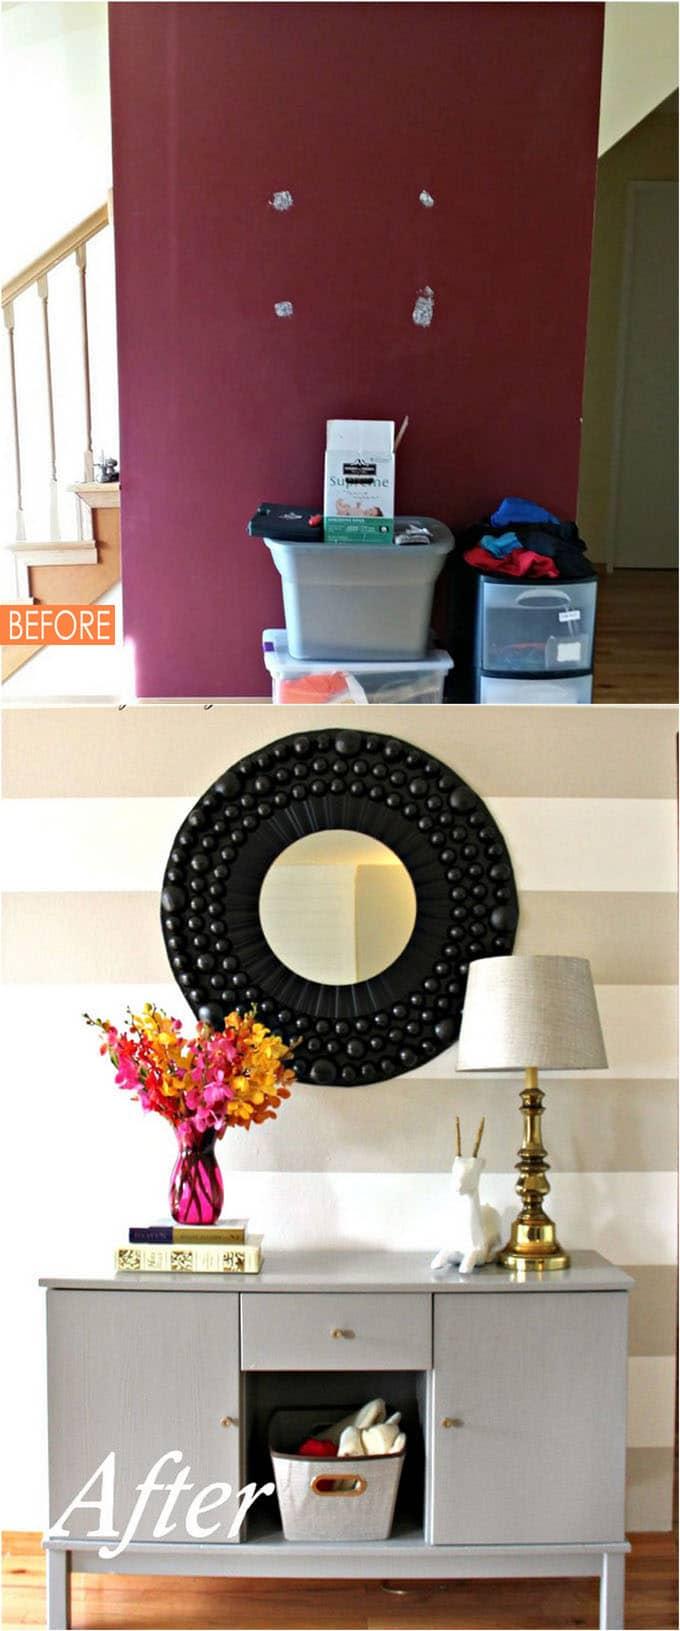 20-entryway-before-after-apieceofrainbowblog (4)